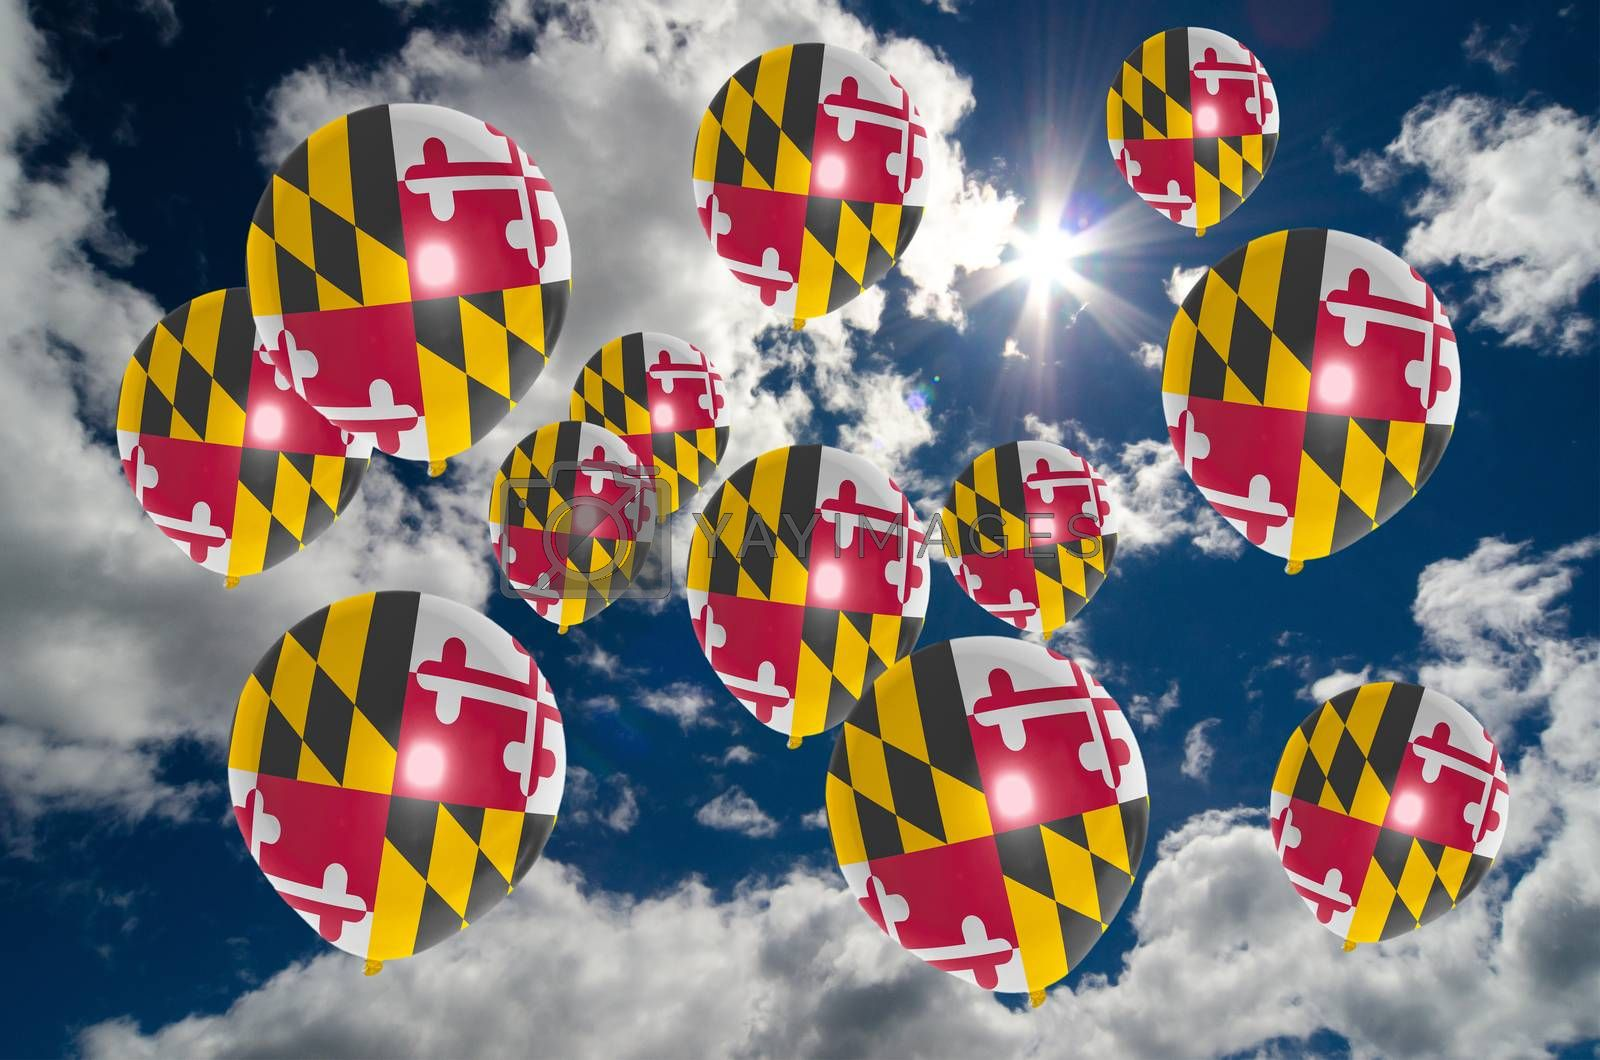 many ballons in colors of maryland flag flying on sky